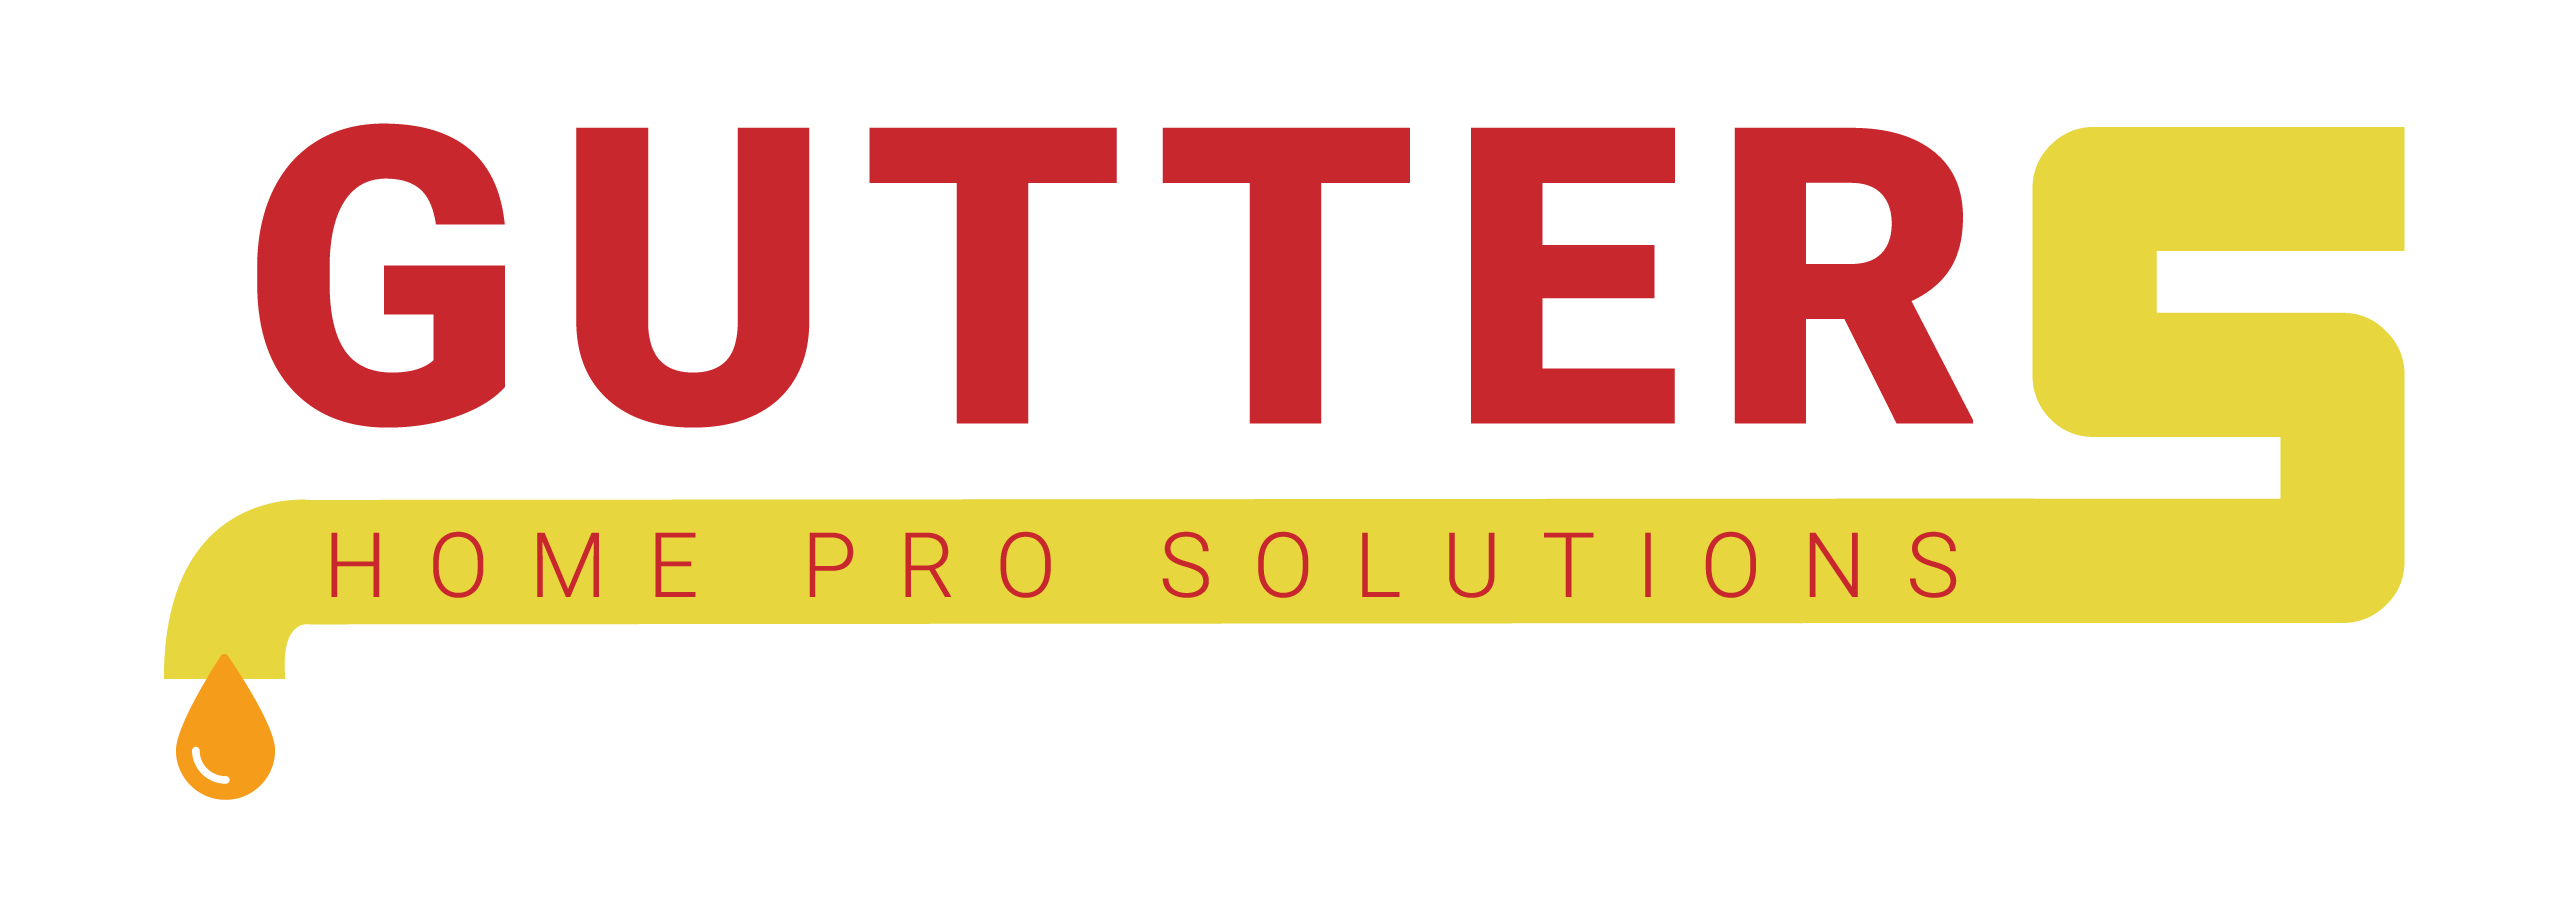 Gutters Home Pro Solutions Logo